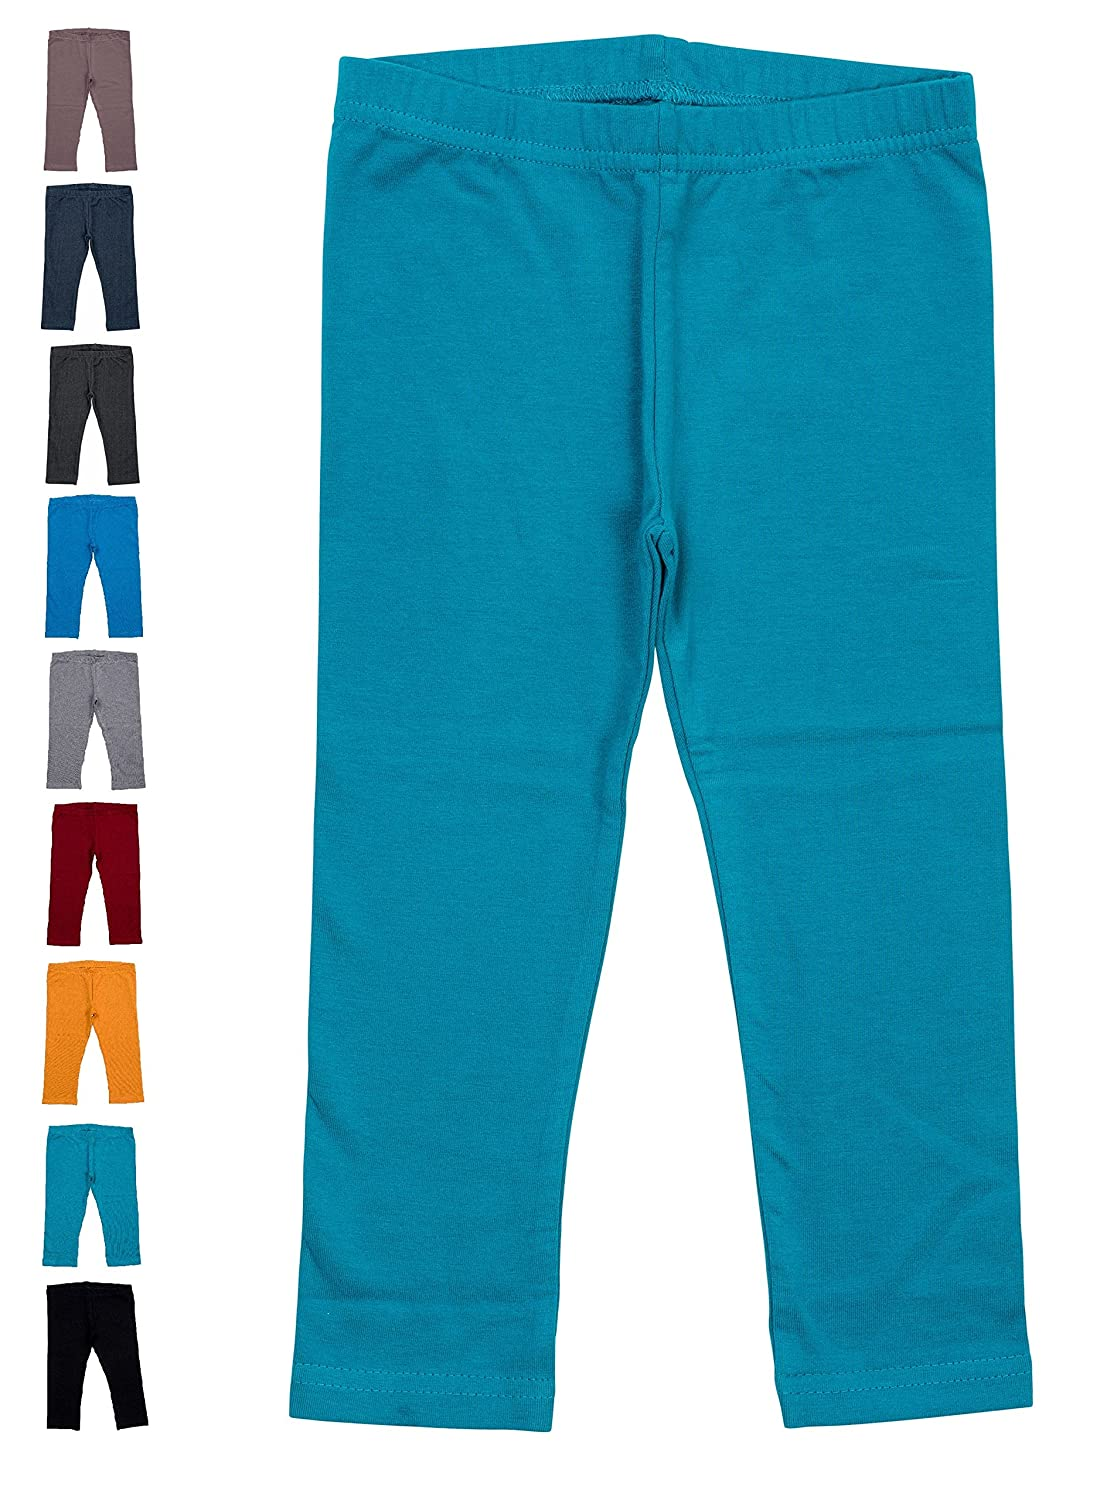 Baby Jay Baby and Toddler Leggings Premium Soft Cotton Solid Color Unisex Tights for Boys and Girls